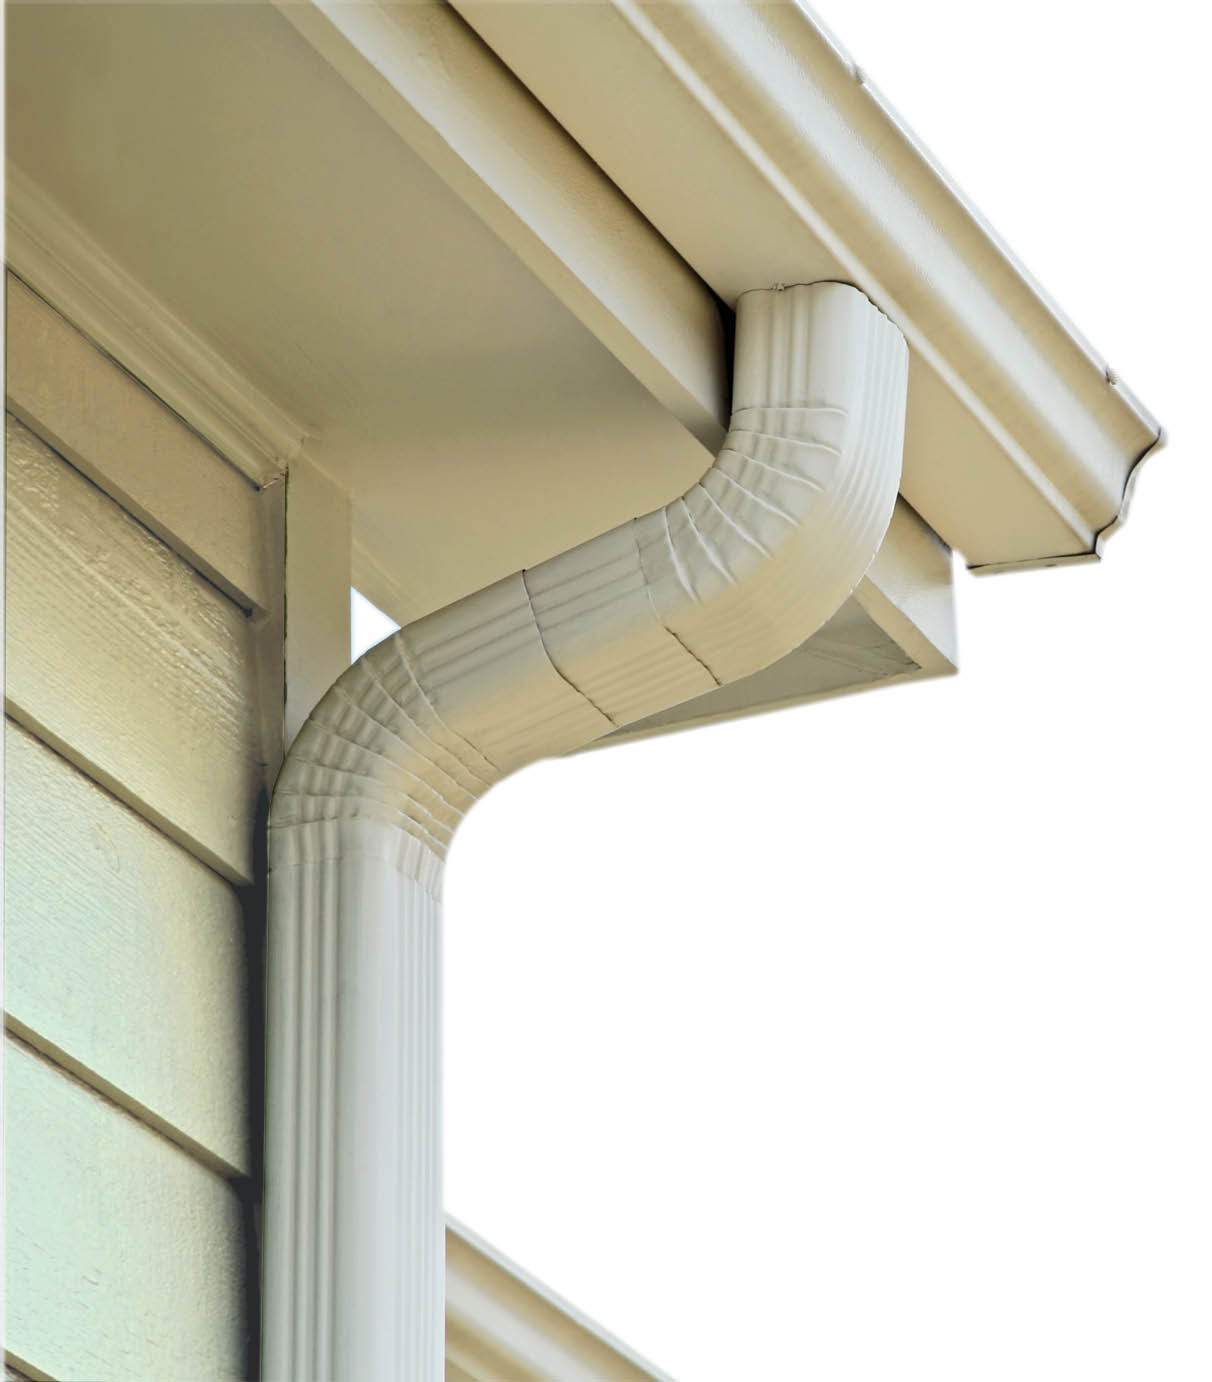 guttering in kansas city, gutters in kansas city, aluminum guttering, gutter water damage, leaks and seams, enamel baked finishing gutters, rust proof gutters, heavy gauge spouts and guttering, proguard KayCan, EZ lock gutter guard, leaf protection